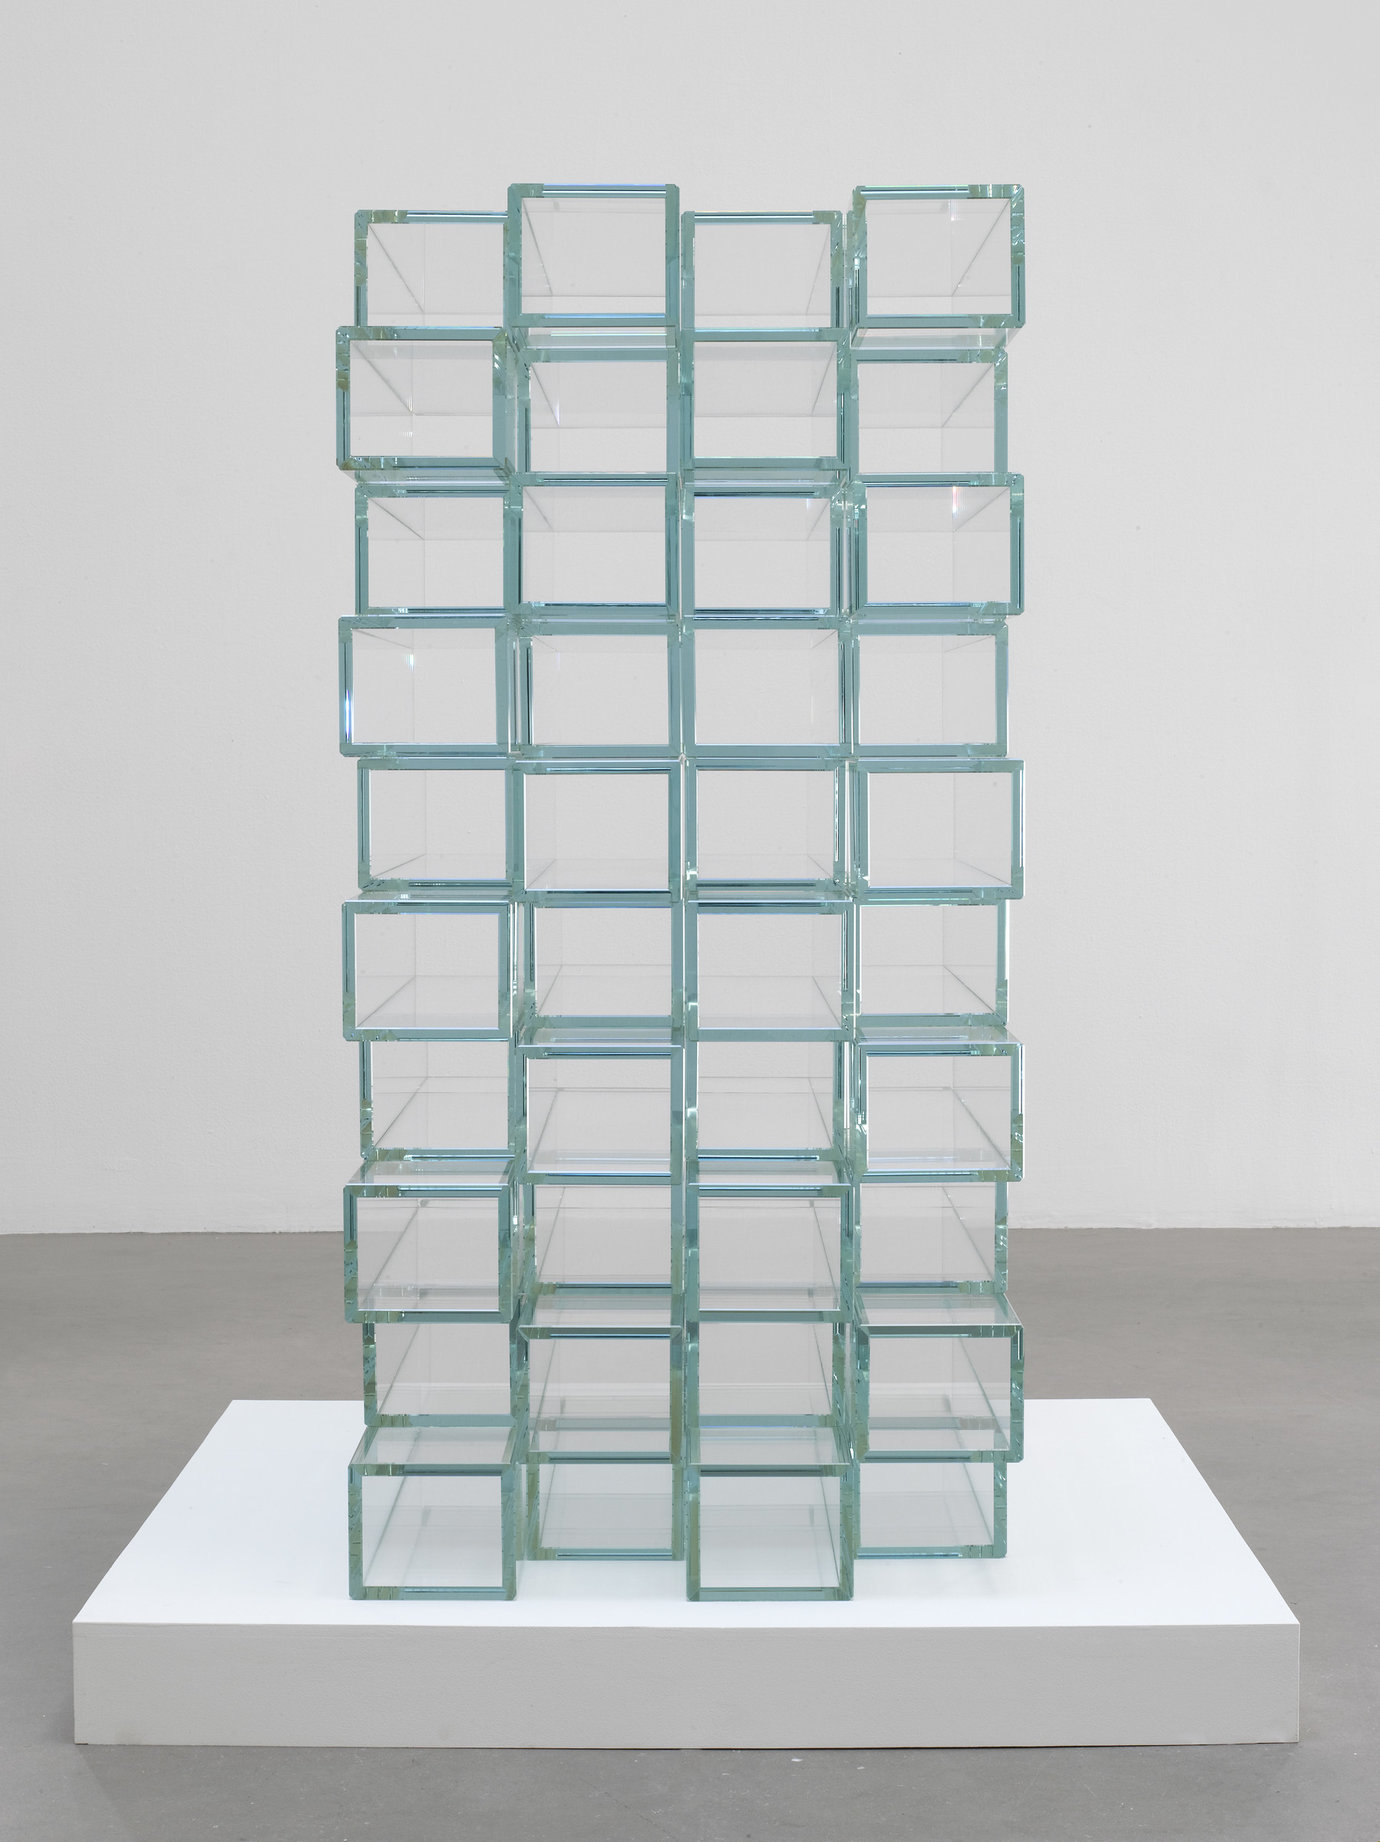 ", 2009. Low iron glass, 47-1/8"" x 22-3/4"" x 29-1/8"" (119.7 cm x 57.8 cm x 74 cm),&#x000A;40 square glass tubes, stacked, overall."